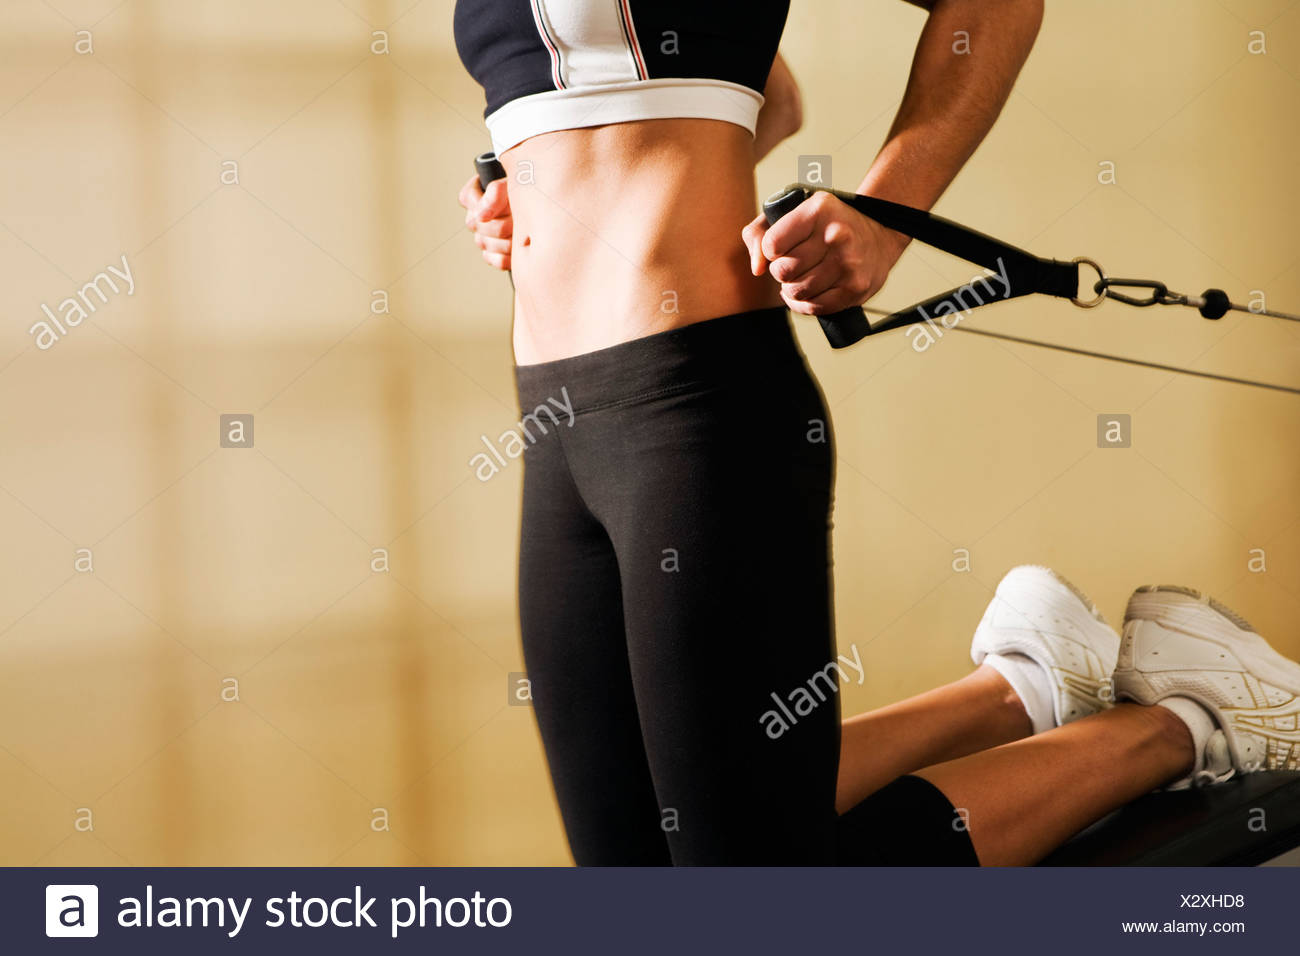 Torso Shot Of Young Woman Training In Gym - Stock Image